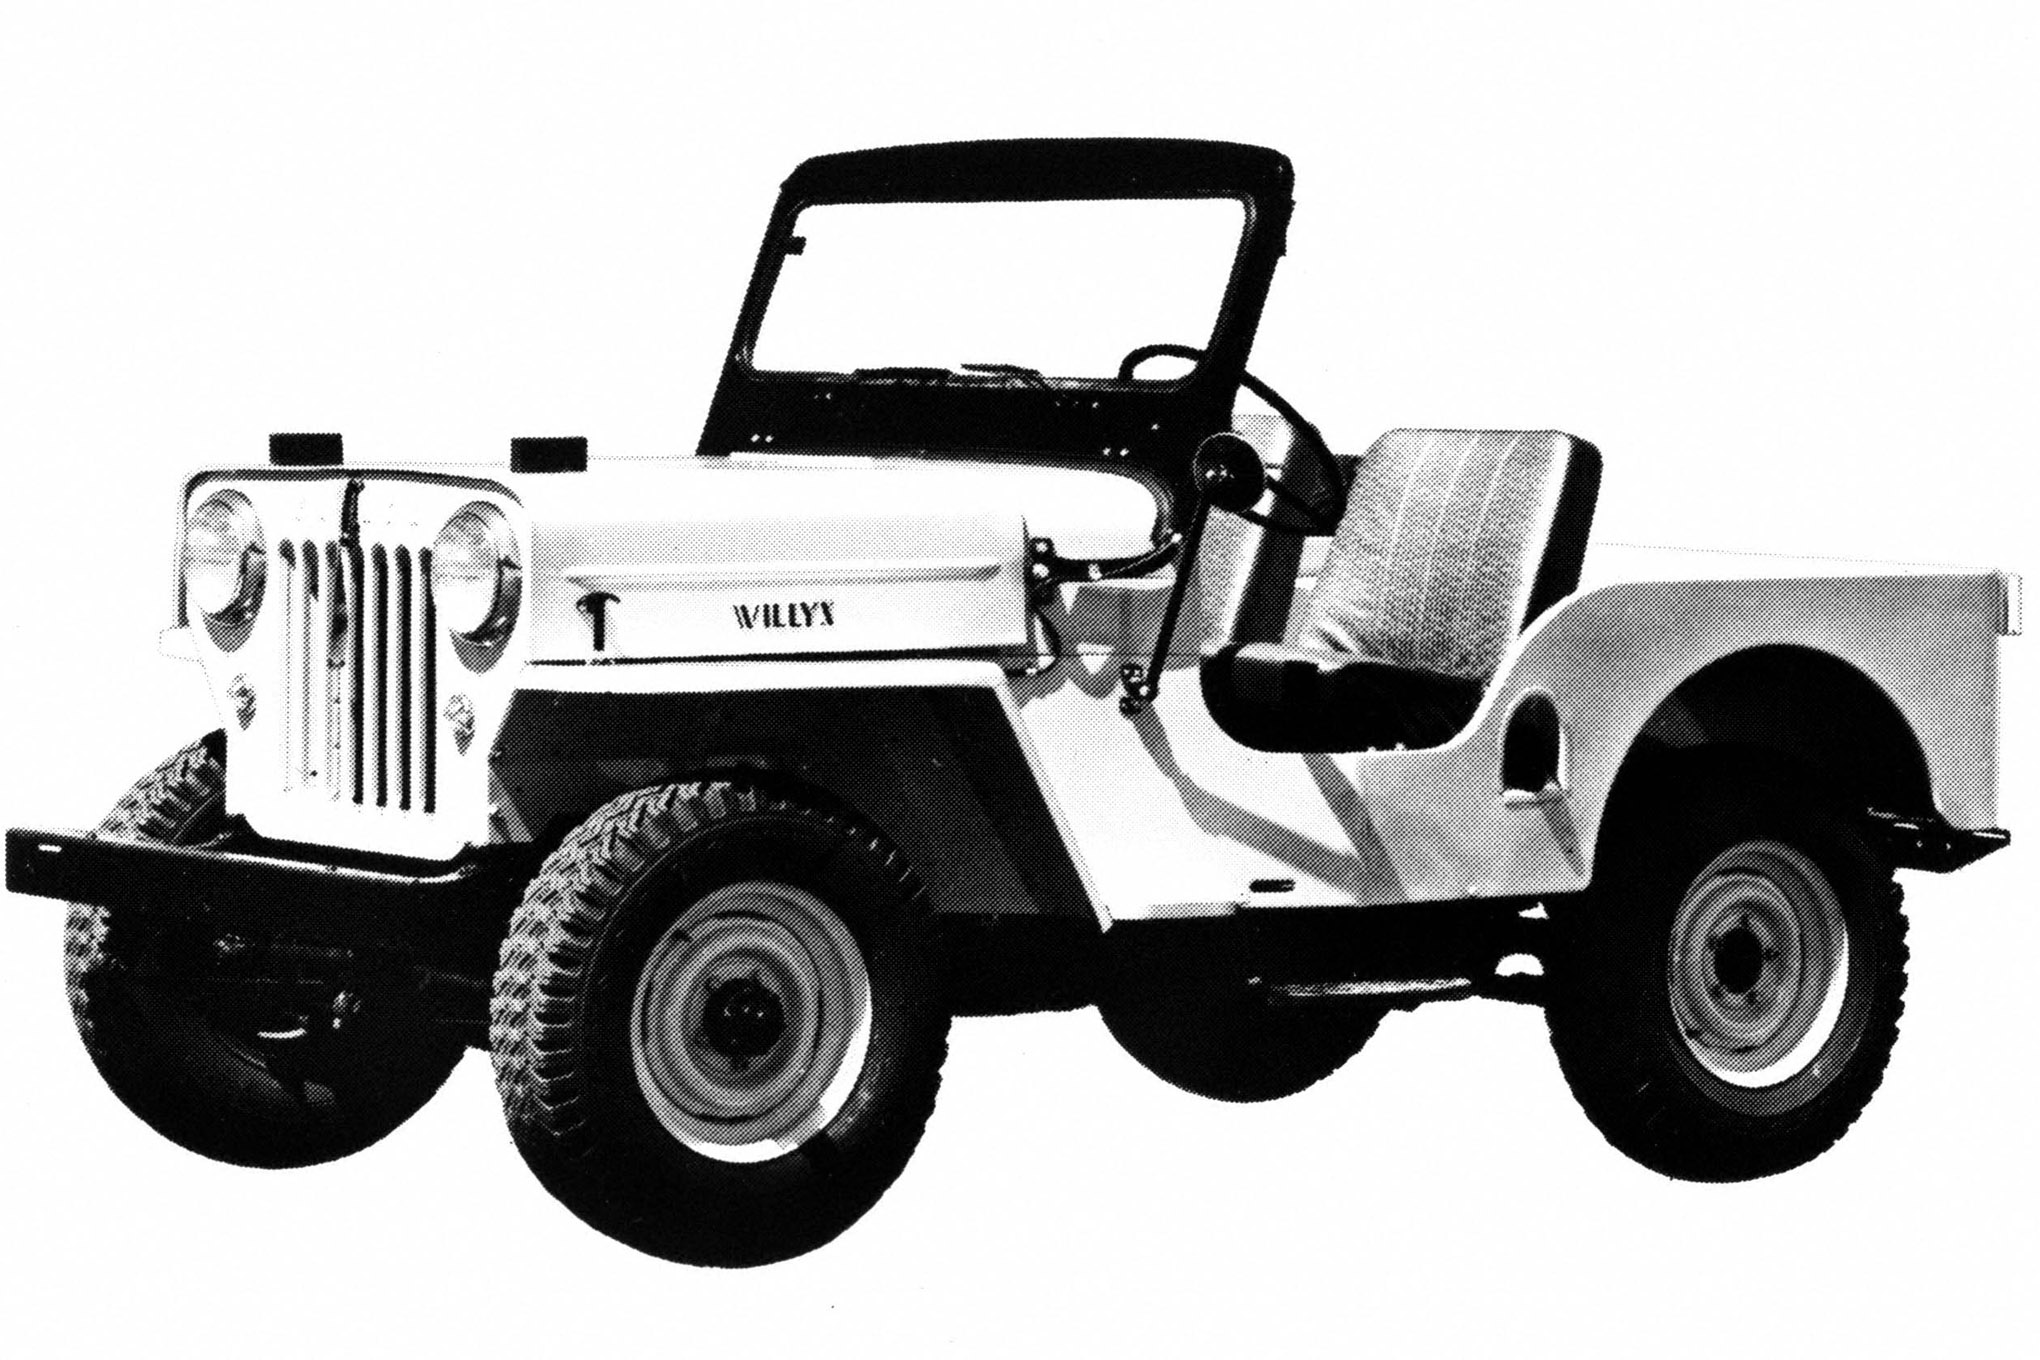 hight resolution of 001 your jeep jeep willys cj3b 3b vintage flatfender high hood